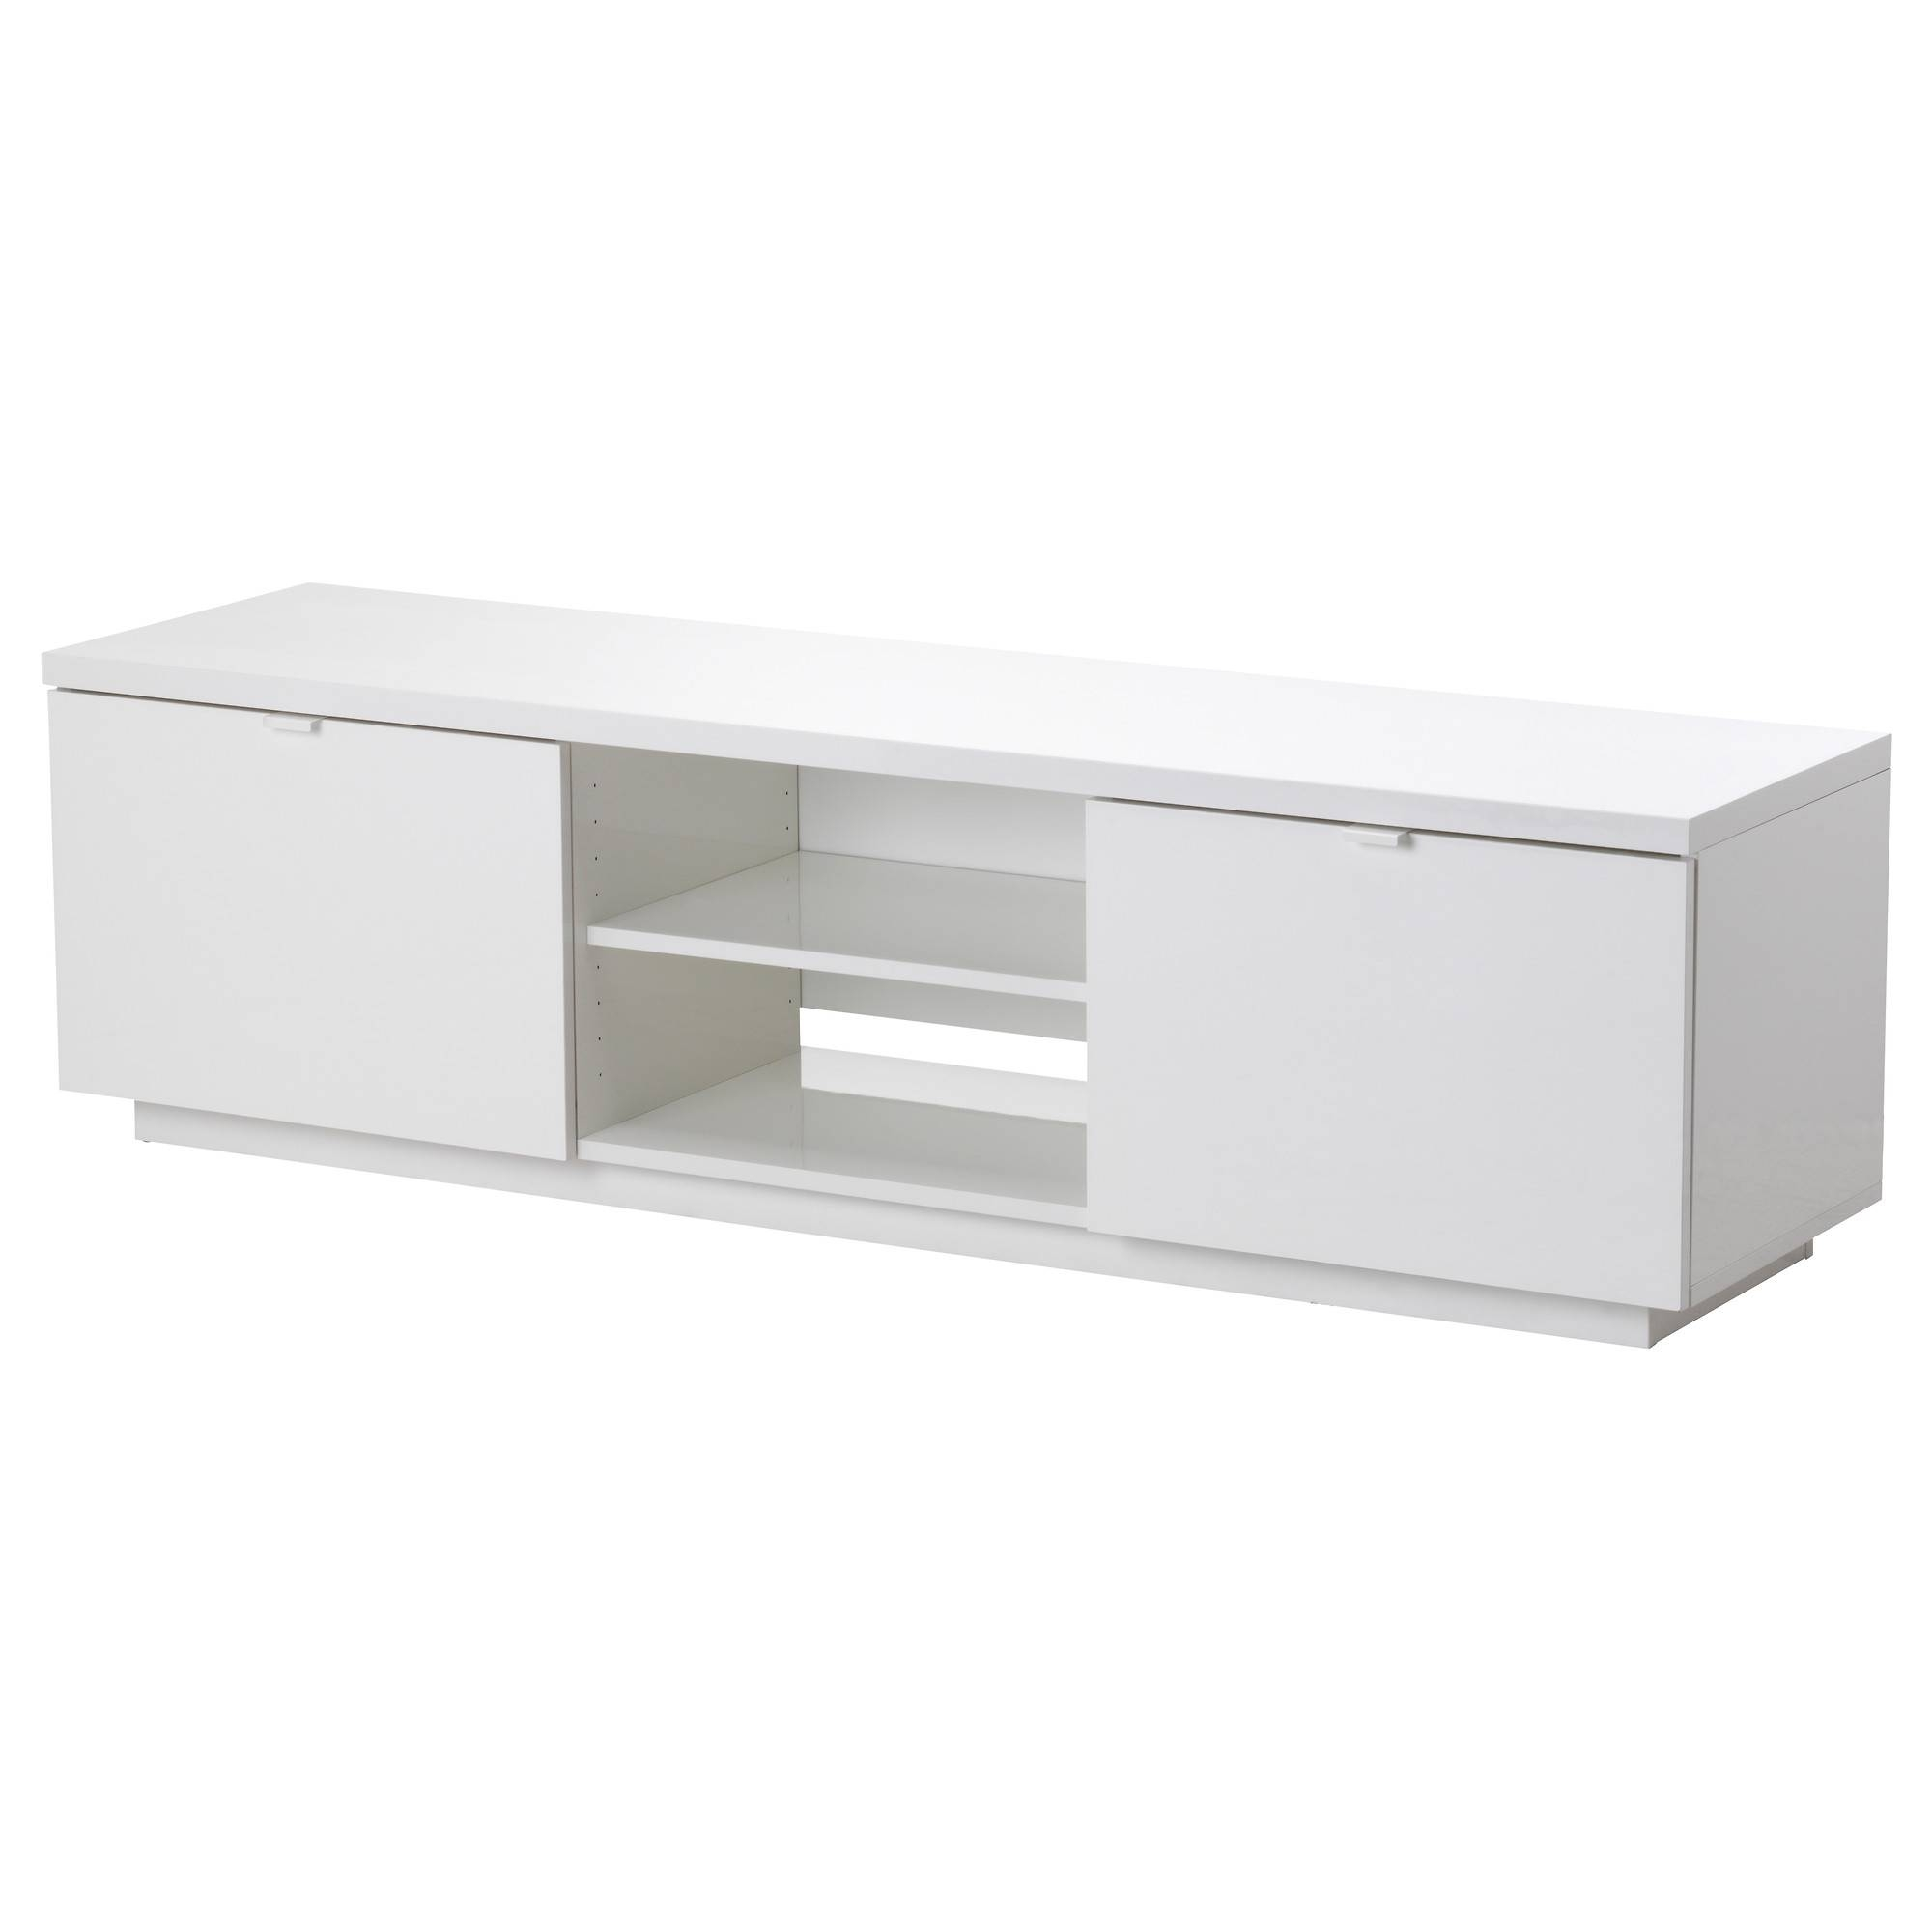 Byås Tv Bench High-Gloss White 160X42X45 Cm - Ikea for White Gloss Ikea Sideboards (Image 9 of 15)